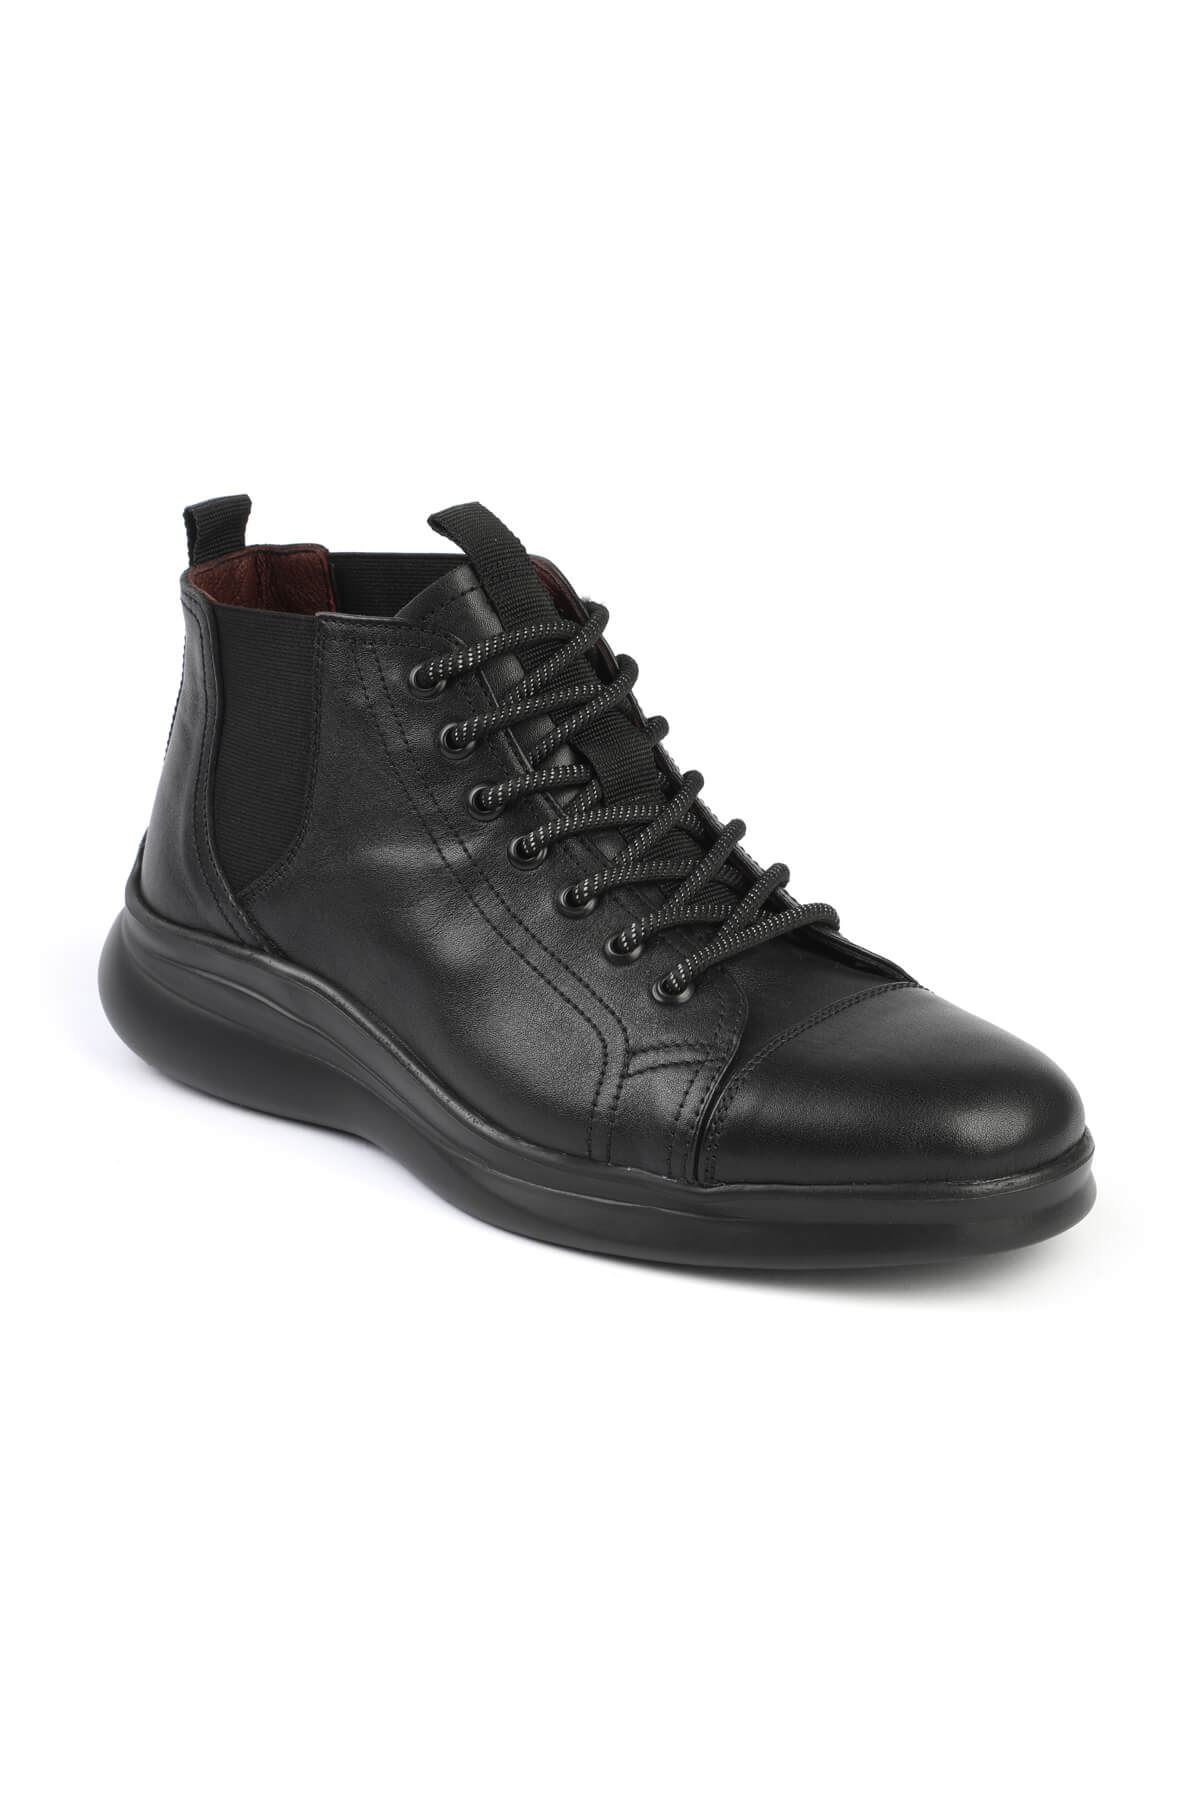 Libero 1328 Black Men's Boots